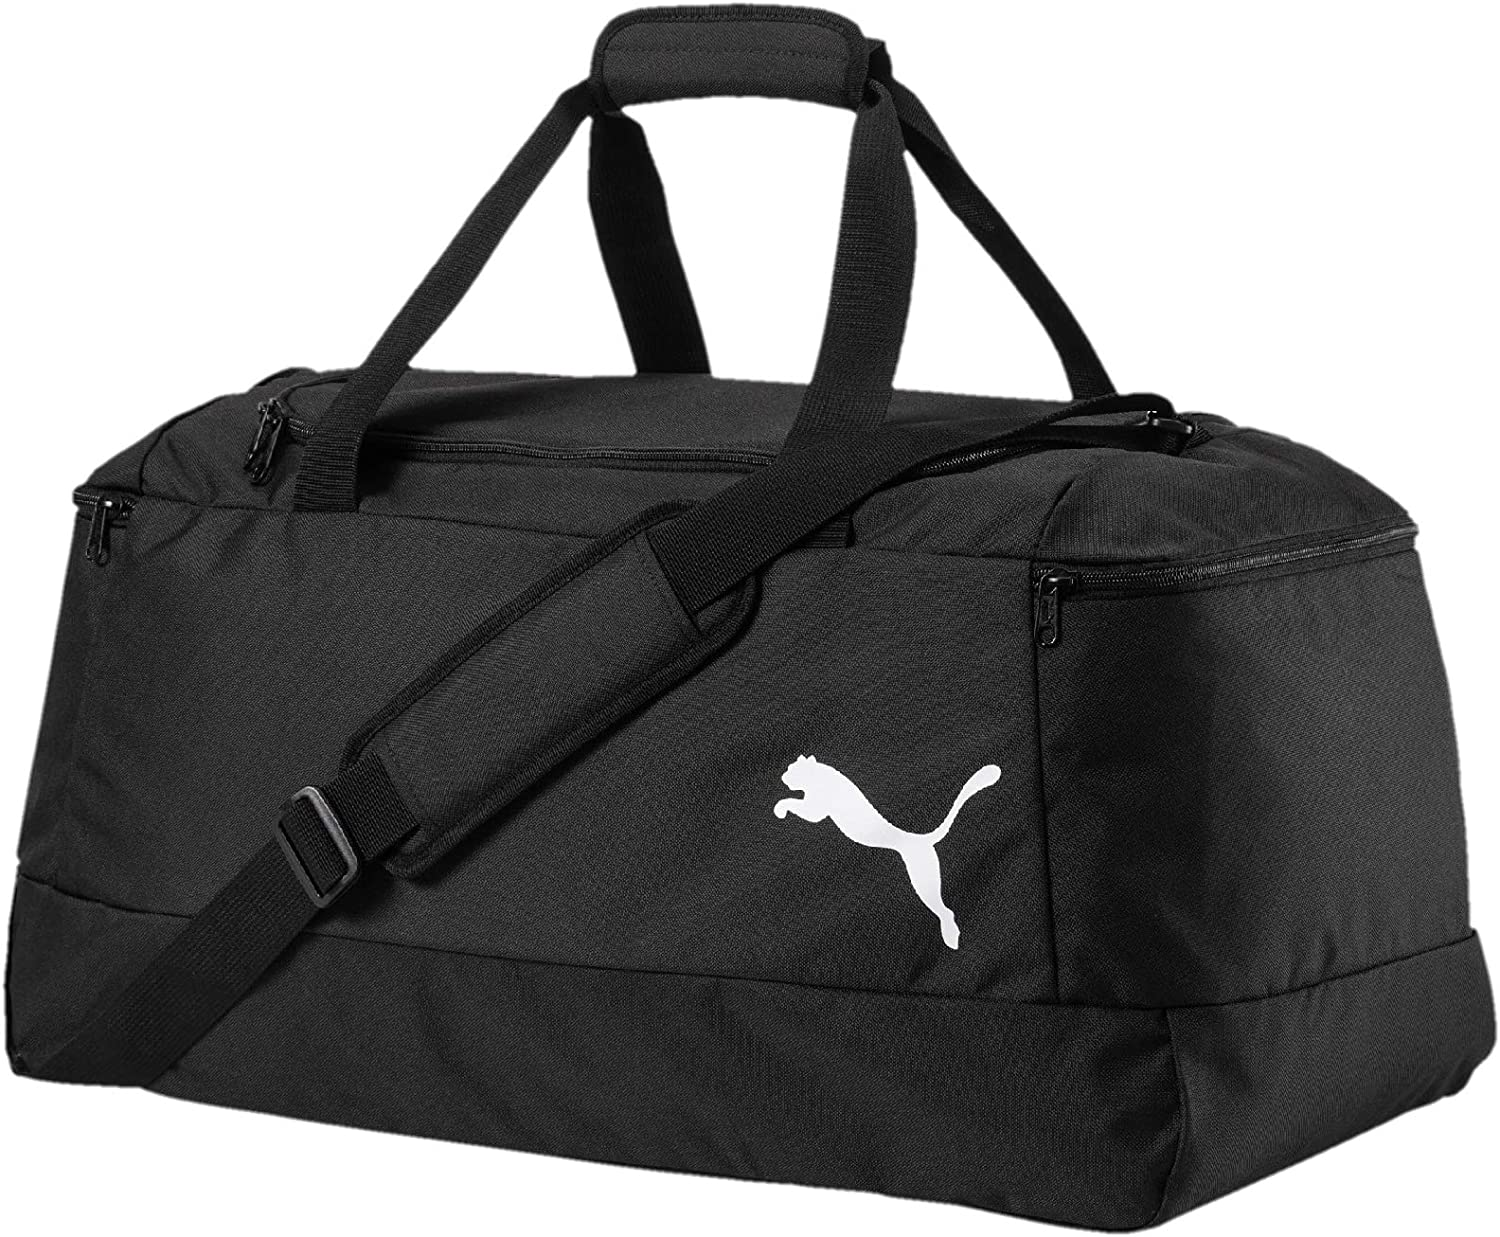 PUMA Pro Training II Medium Sporttasche Schwarz